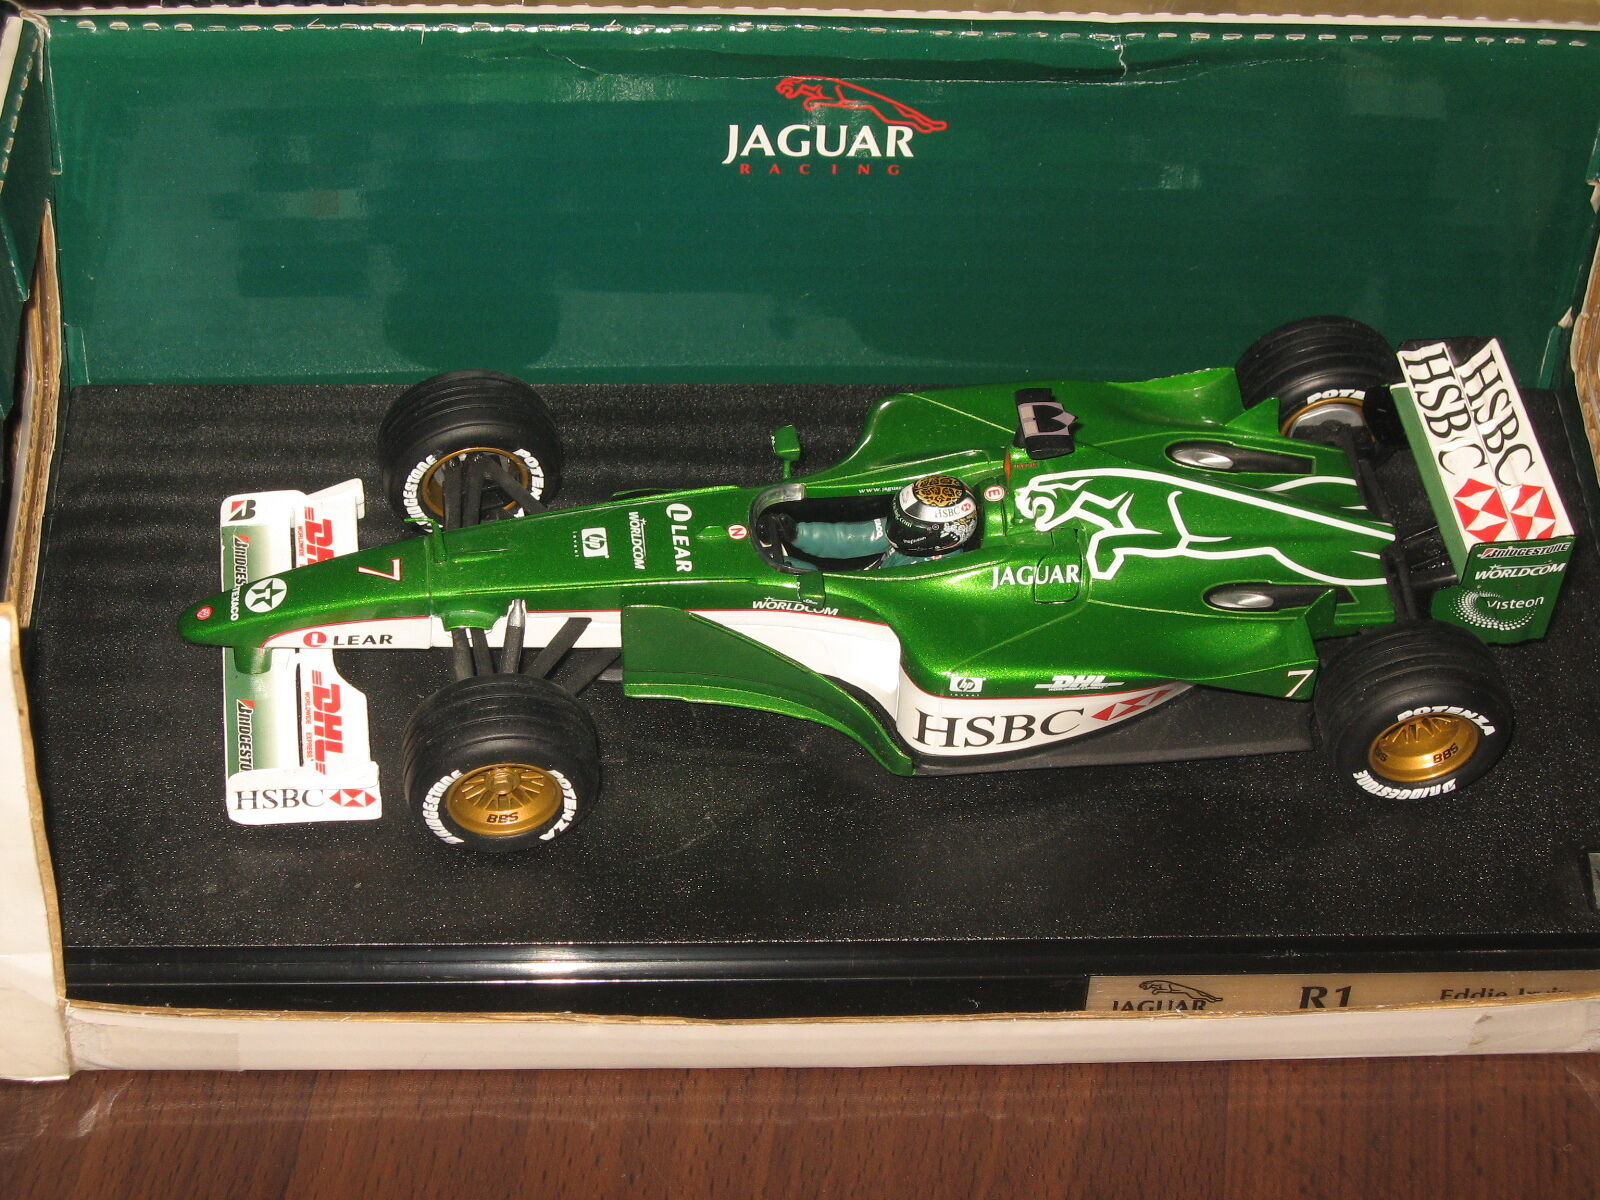 Ultra rare 1 18 Hot Wheels Jaguar Racing R1 Season 2000 Eddie Irvine..NEW